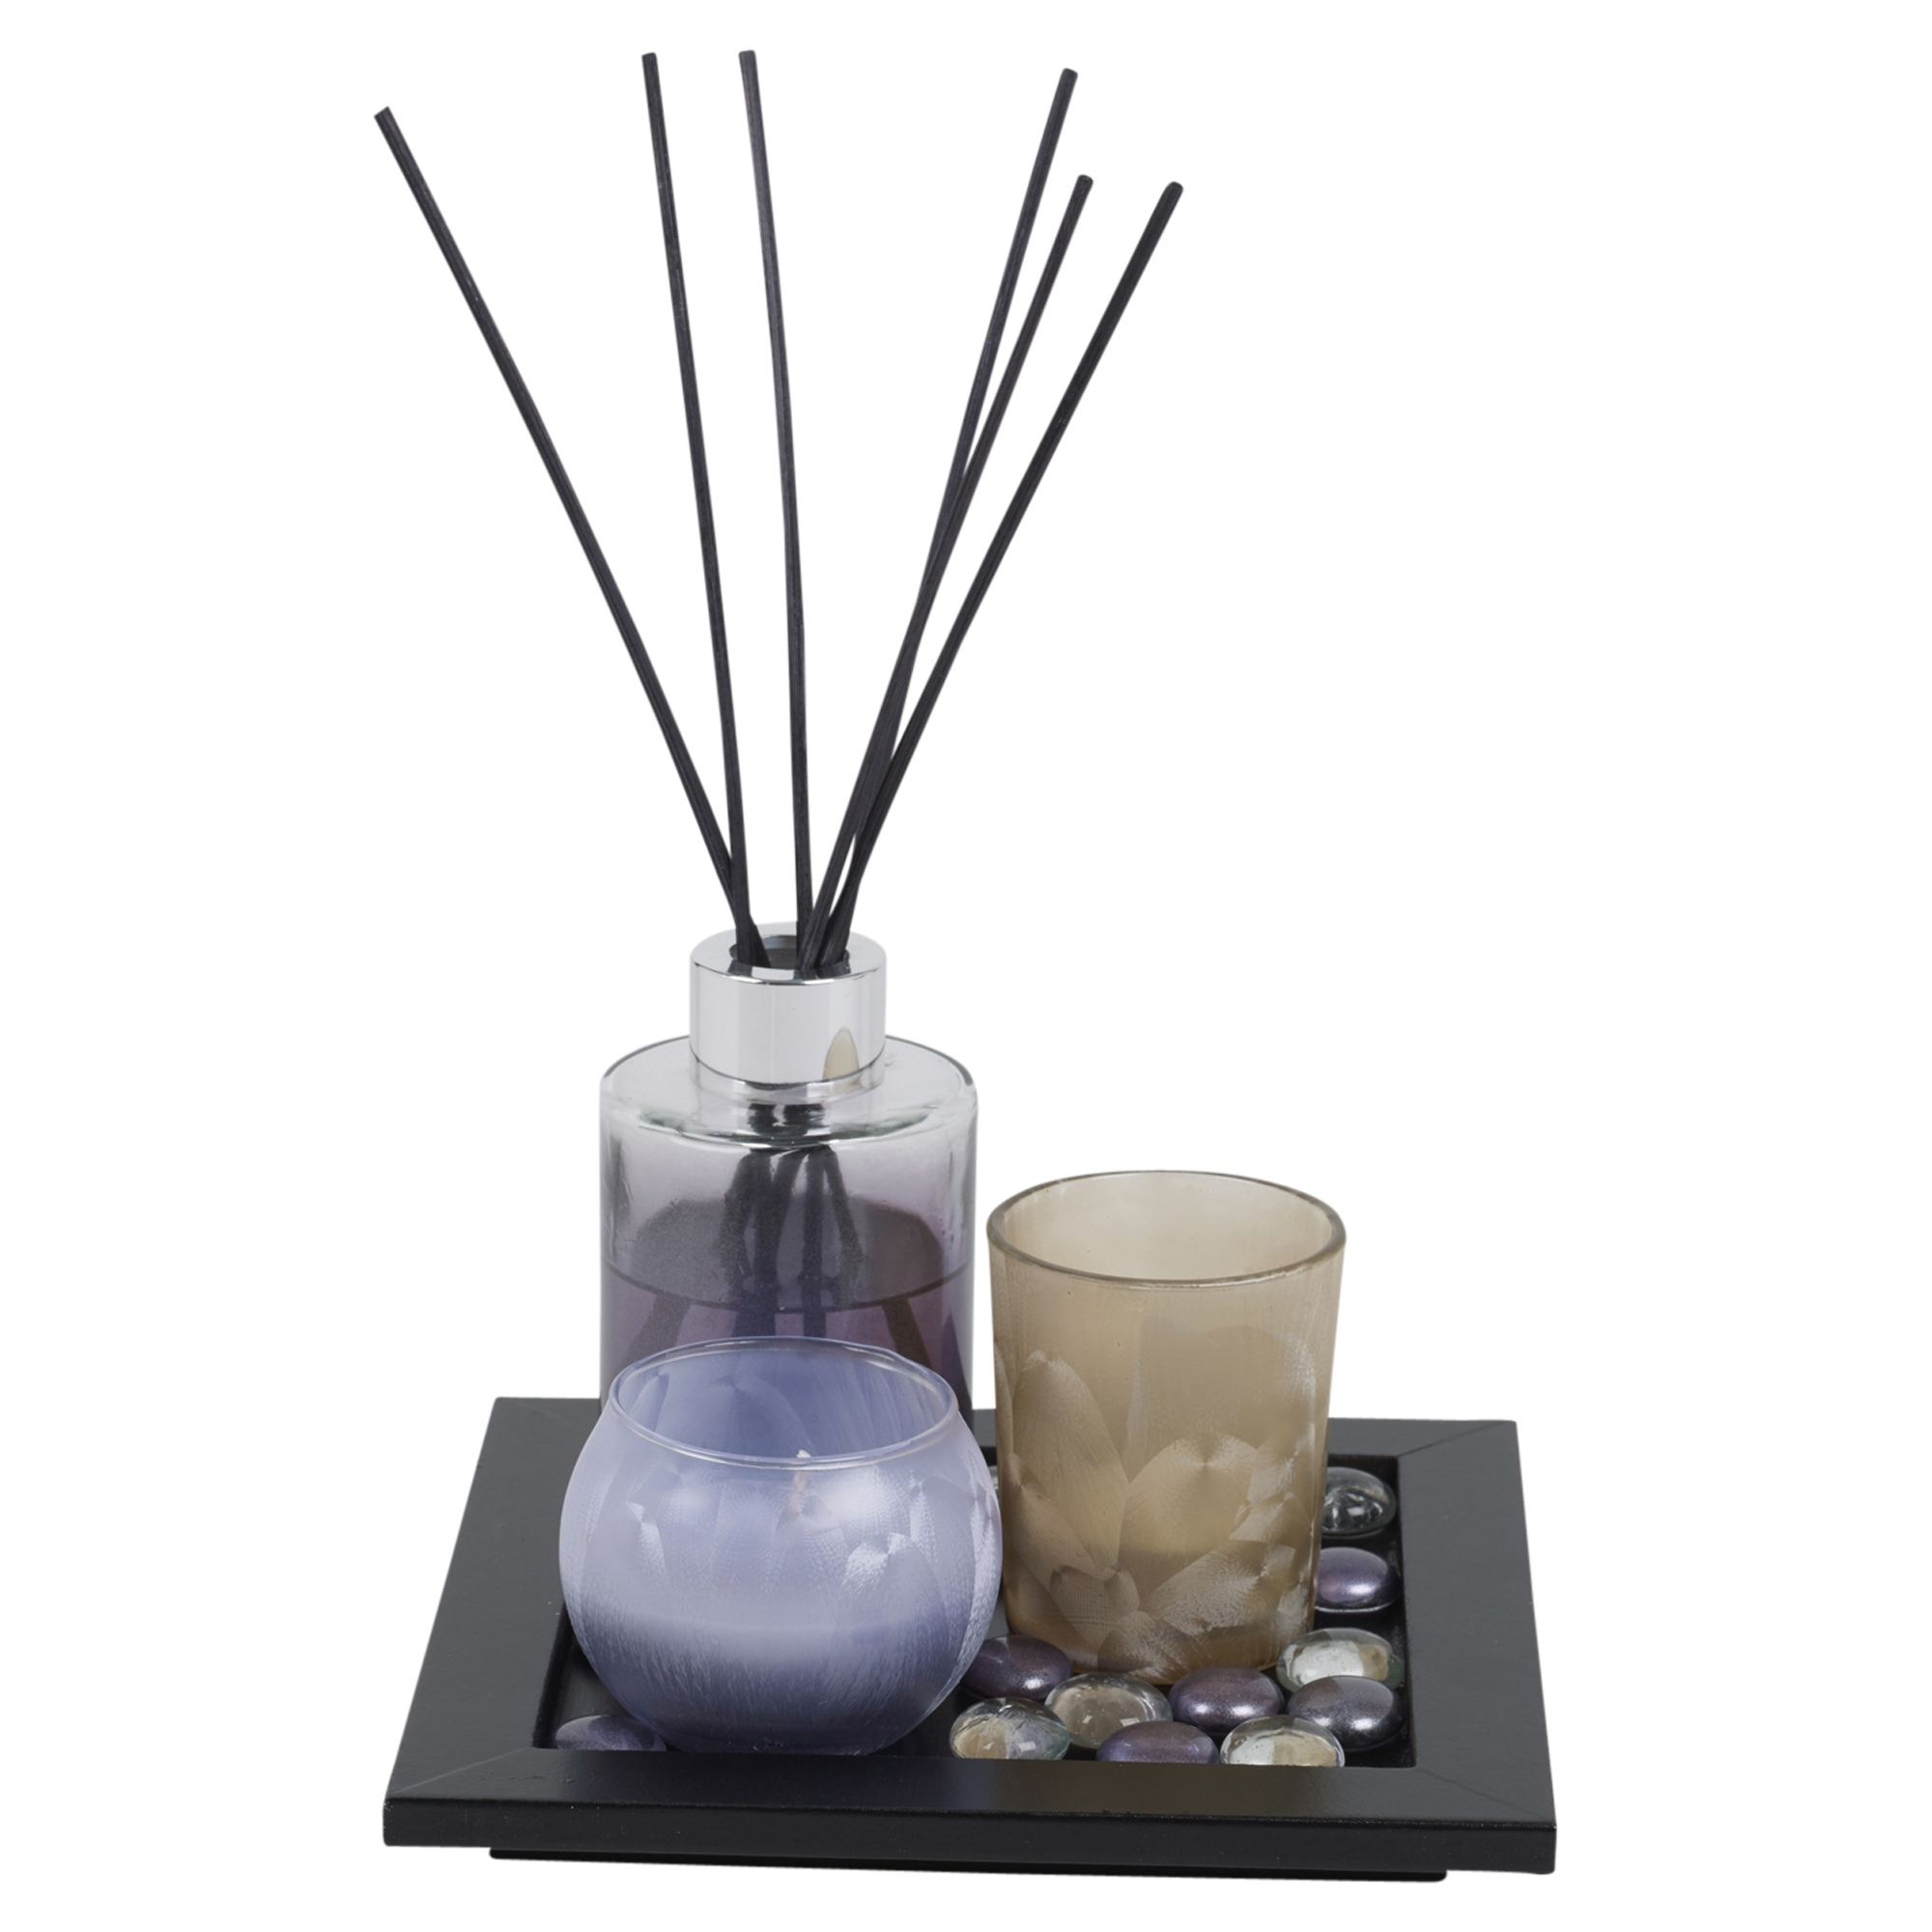 #6E5F4D Perfume Reed Diffuser & Scented Tealight Candle Tray Aroma  Most Effective 1175 Aromatherapy Diffuser Set pictures with 2000x2000 px on helpvideos.info - Air Conditioners, Air Coolers and more